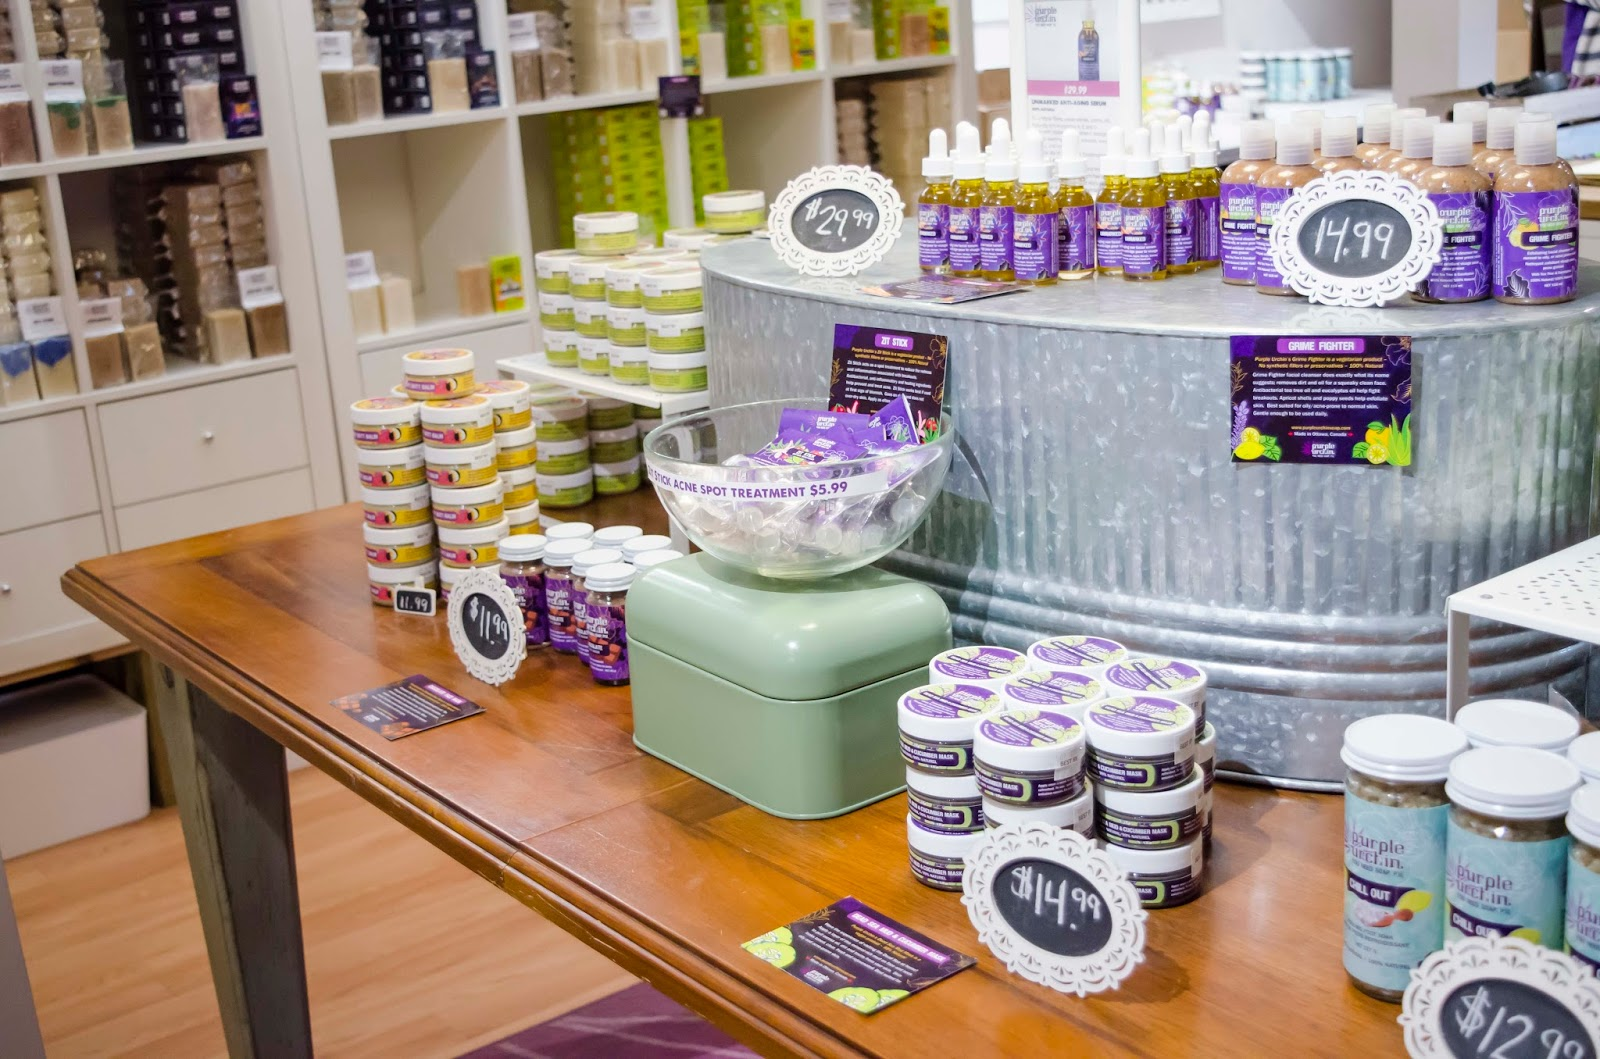 A table in Purple Urchin's store with hand creams, face creams and other handmade skincare products